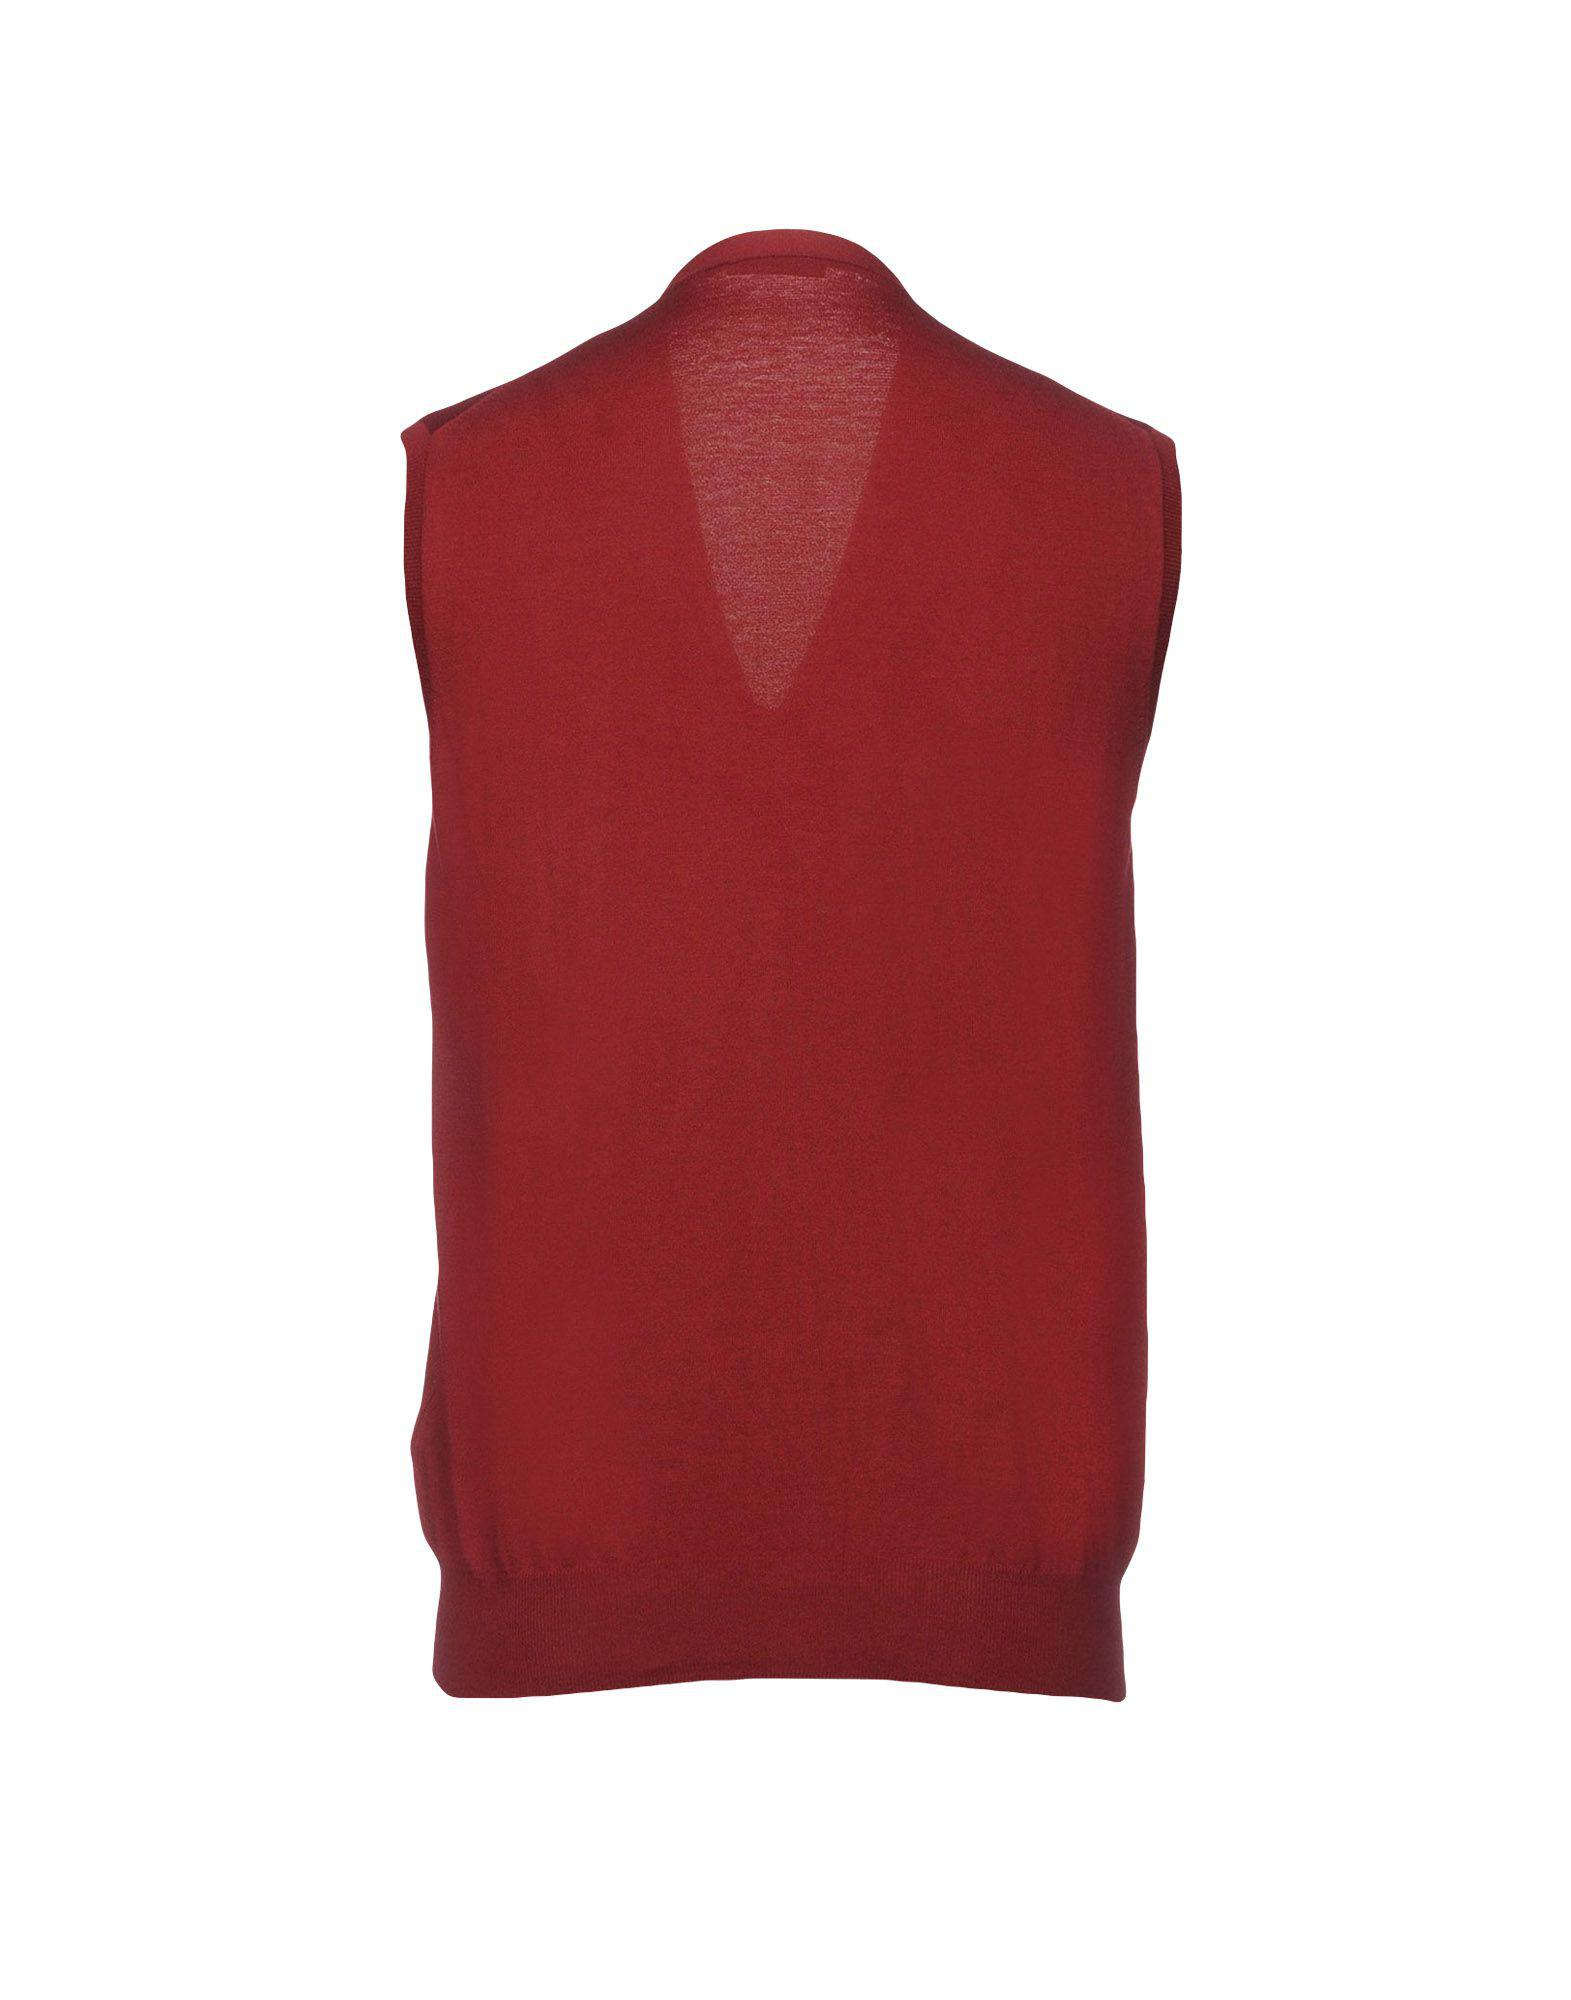 28aa50ce38a39 Lyst - Paolo Pecora Cardigan in Red for Men